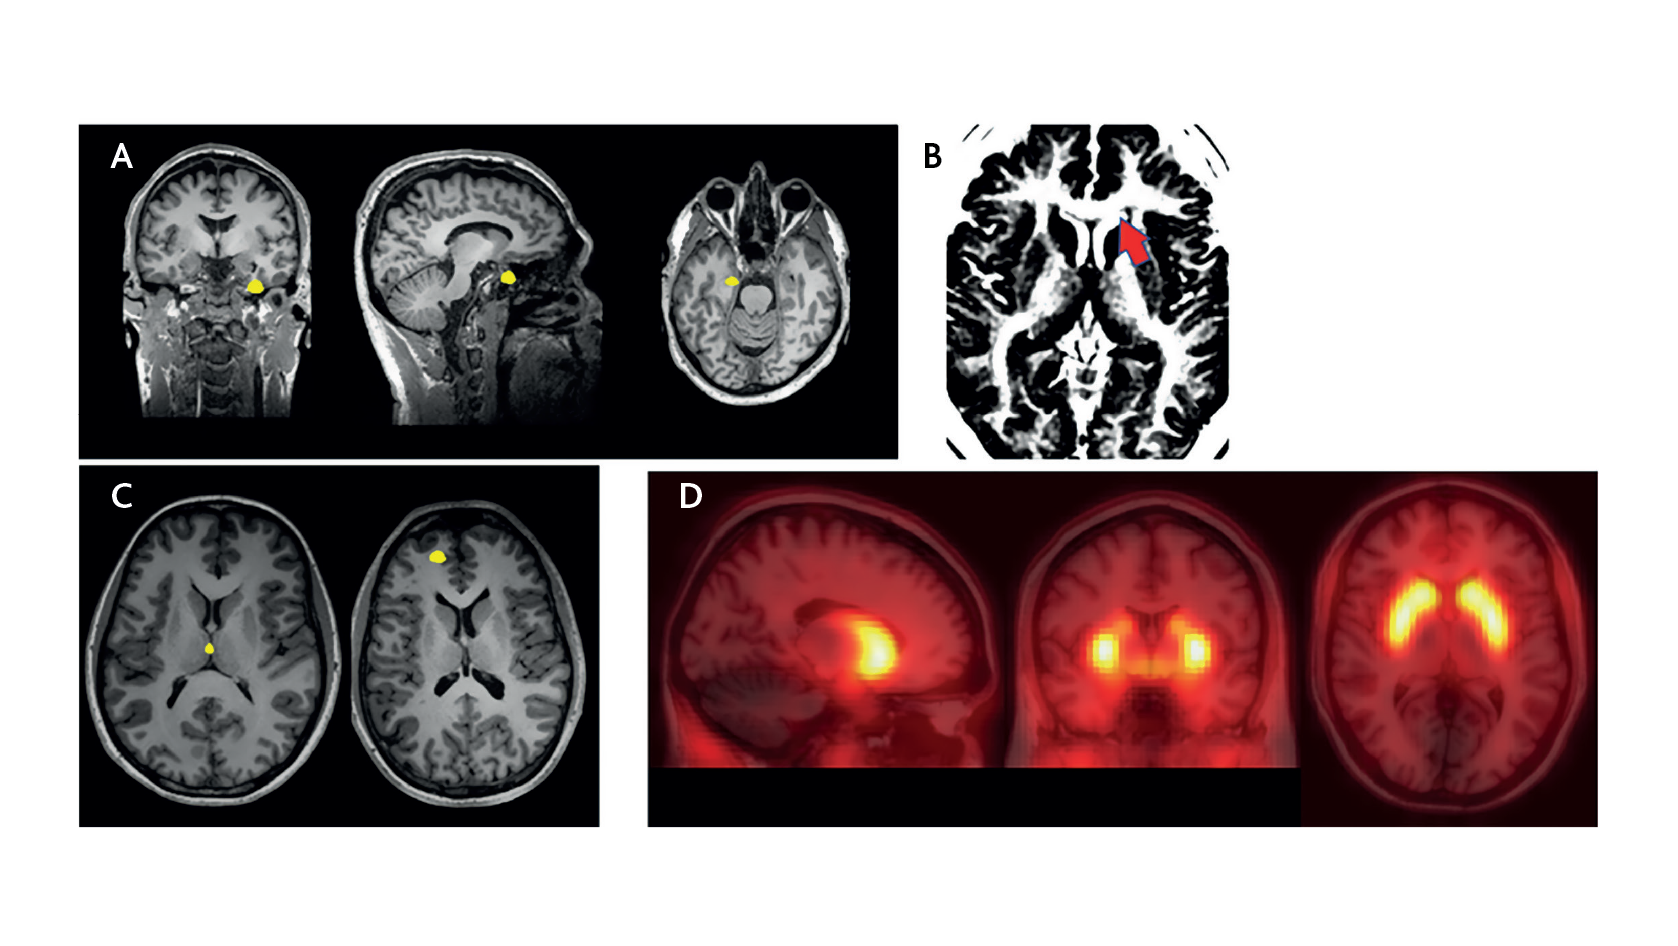 Neuroimaging differences between patients with prodromal symptoms who do and do not later develop psychosis